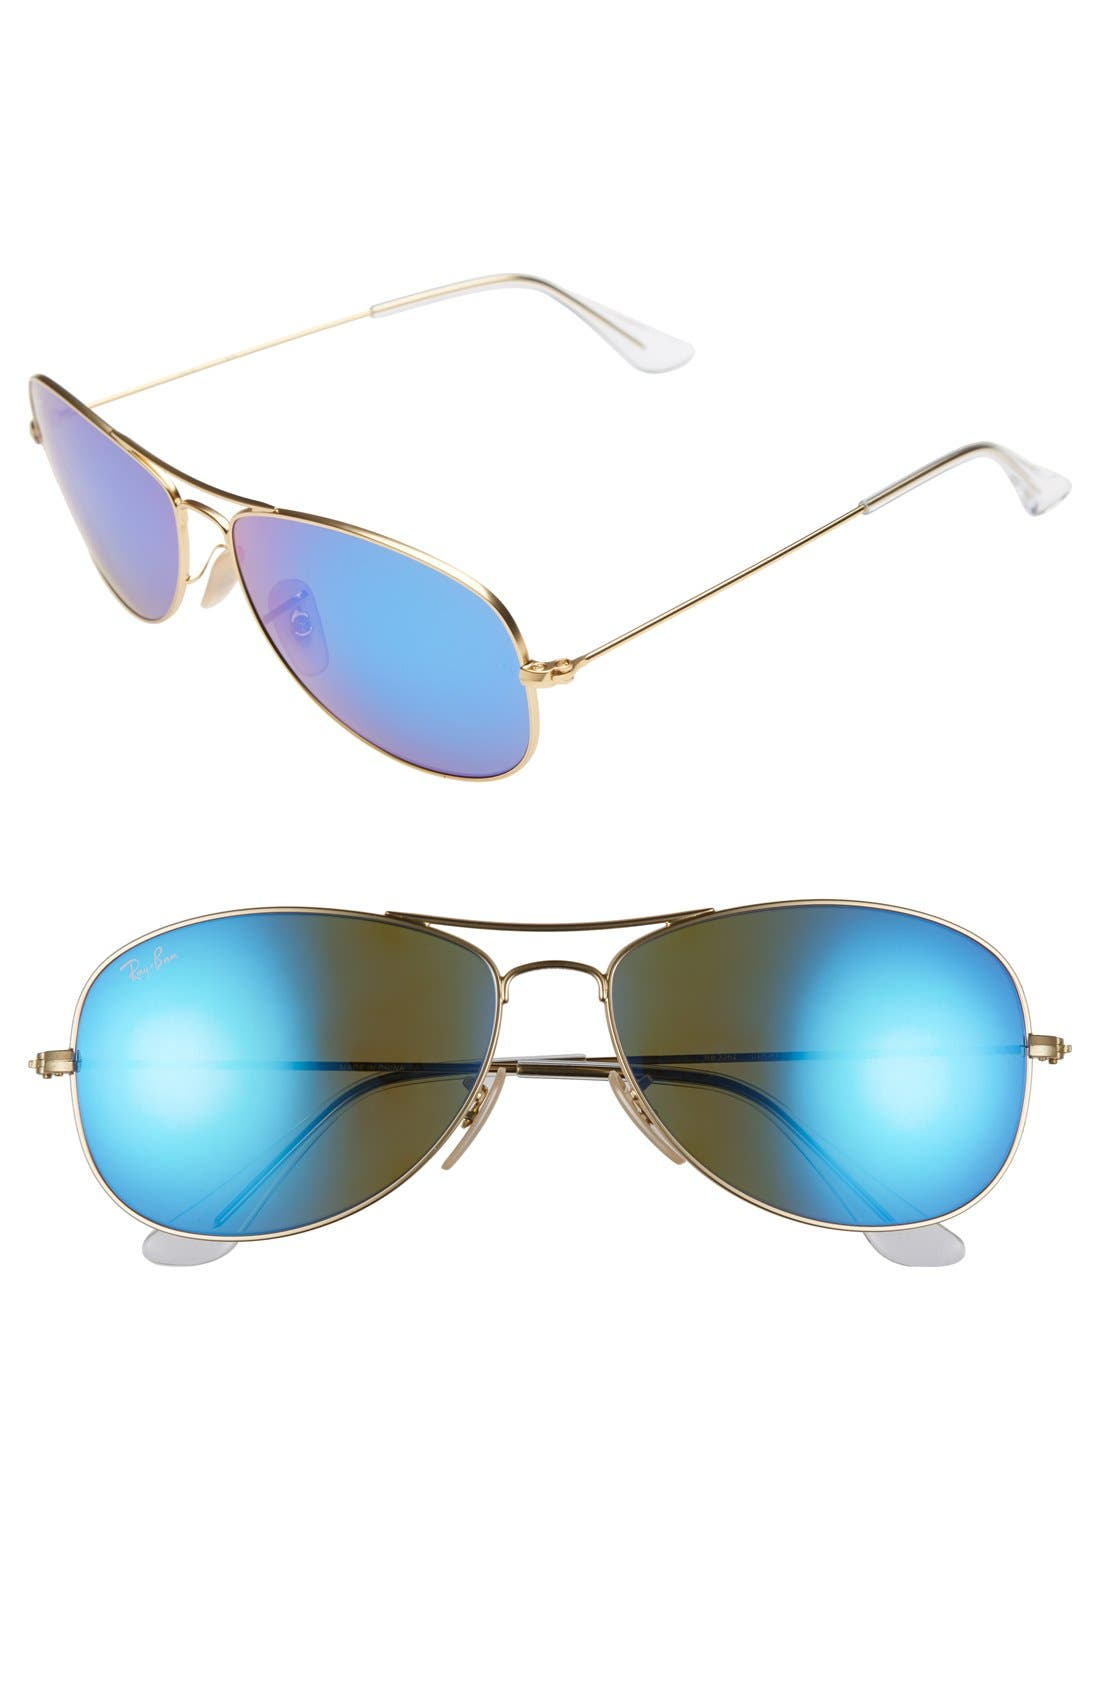 Main Image - Ray-Ban 'New Classic' 59mm Aviator Sunglasses